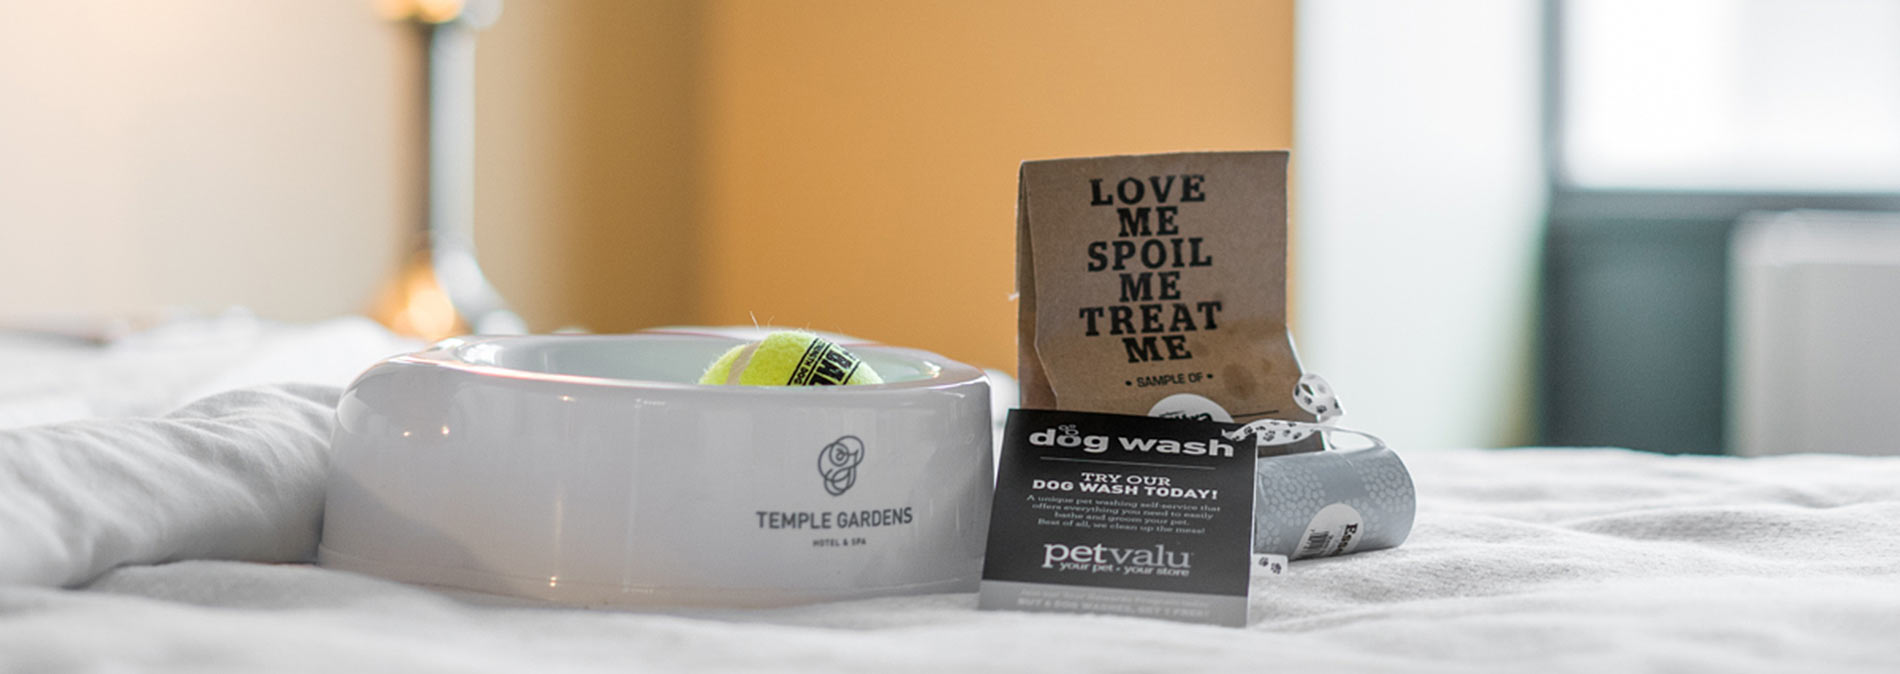 food bowl with hotel logo and treats for pets